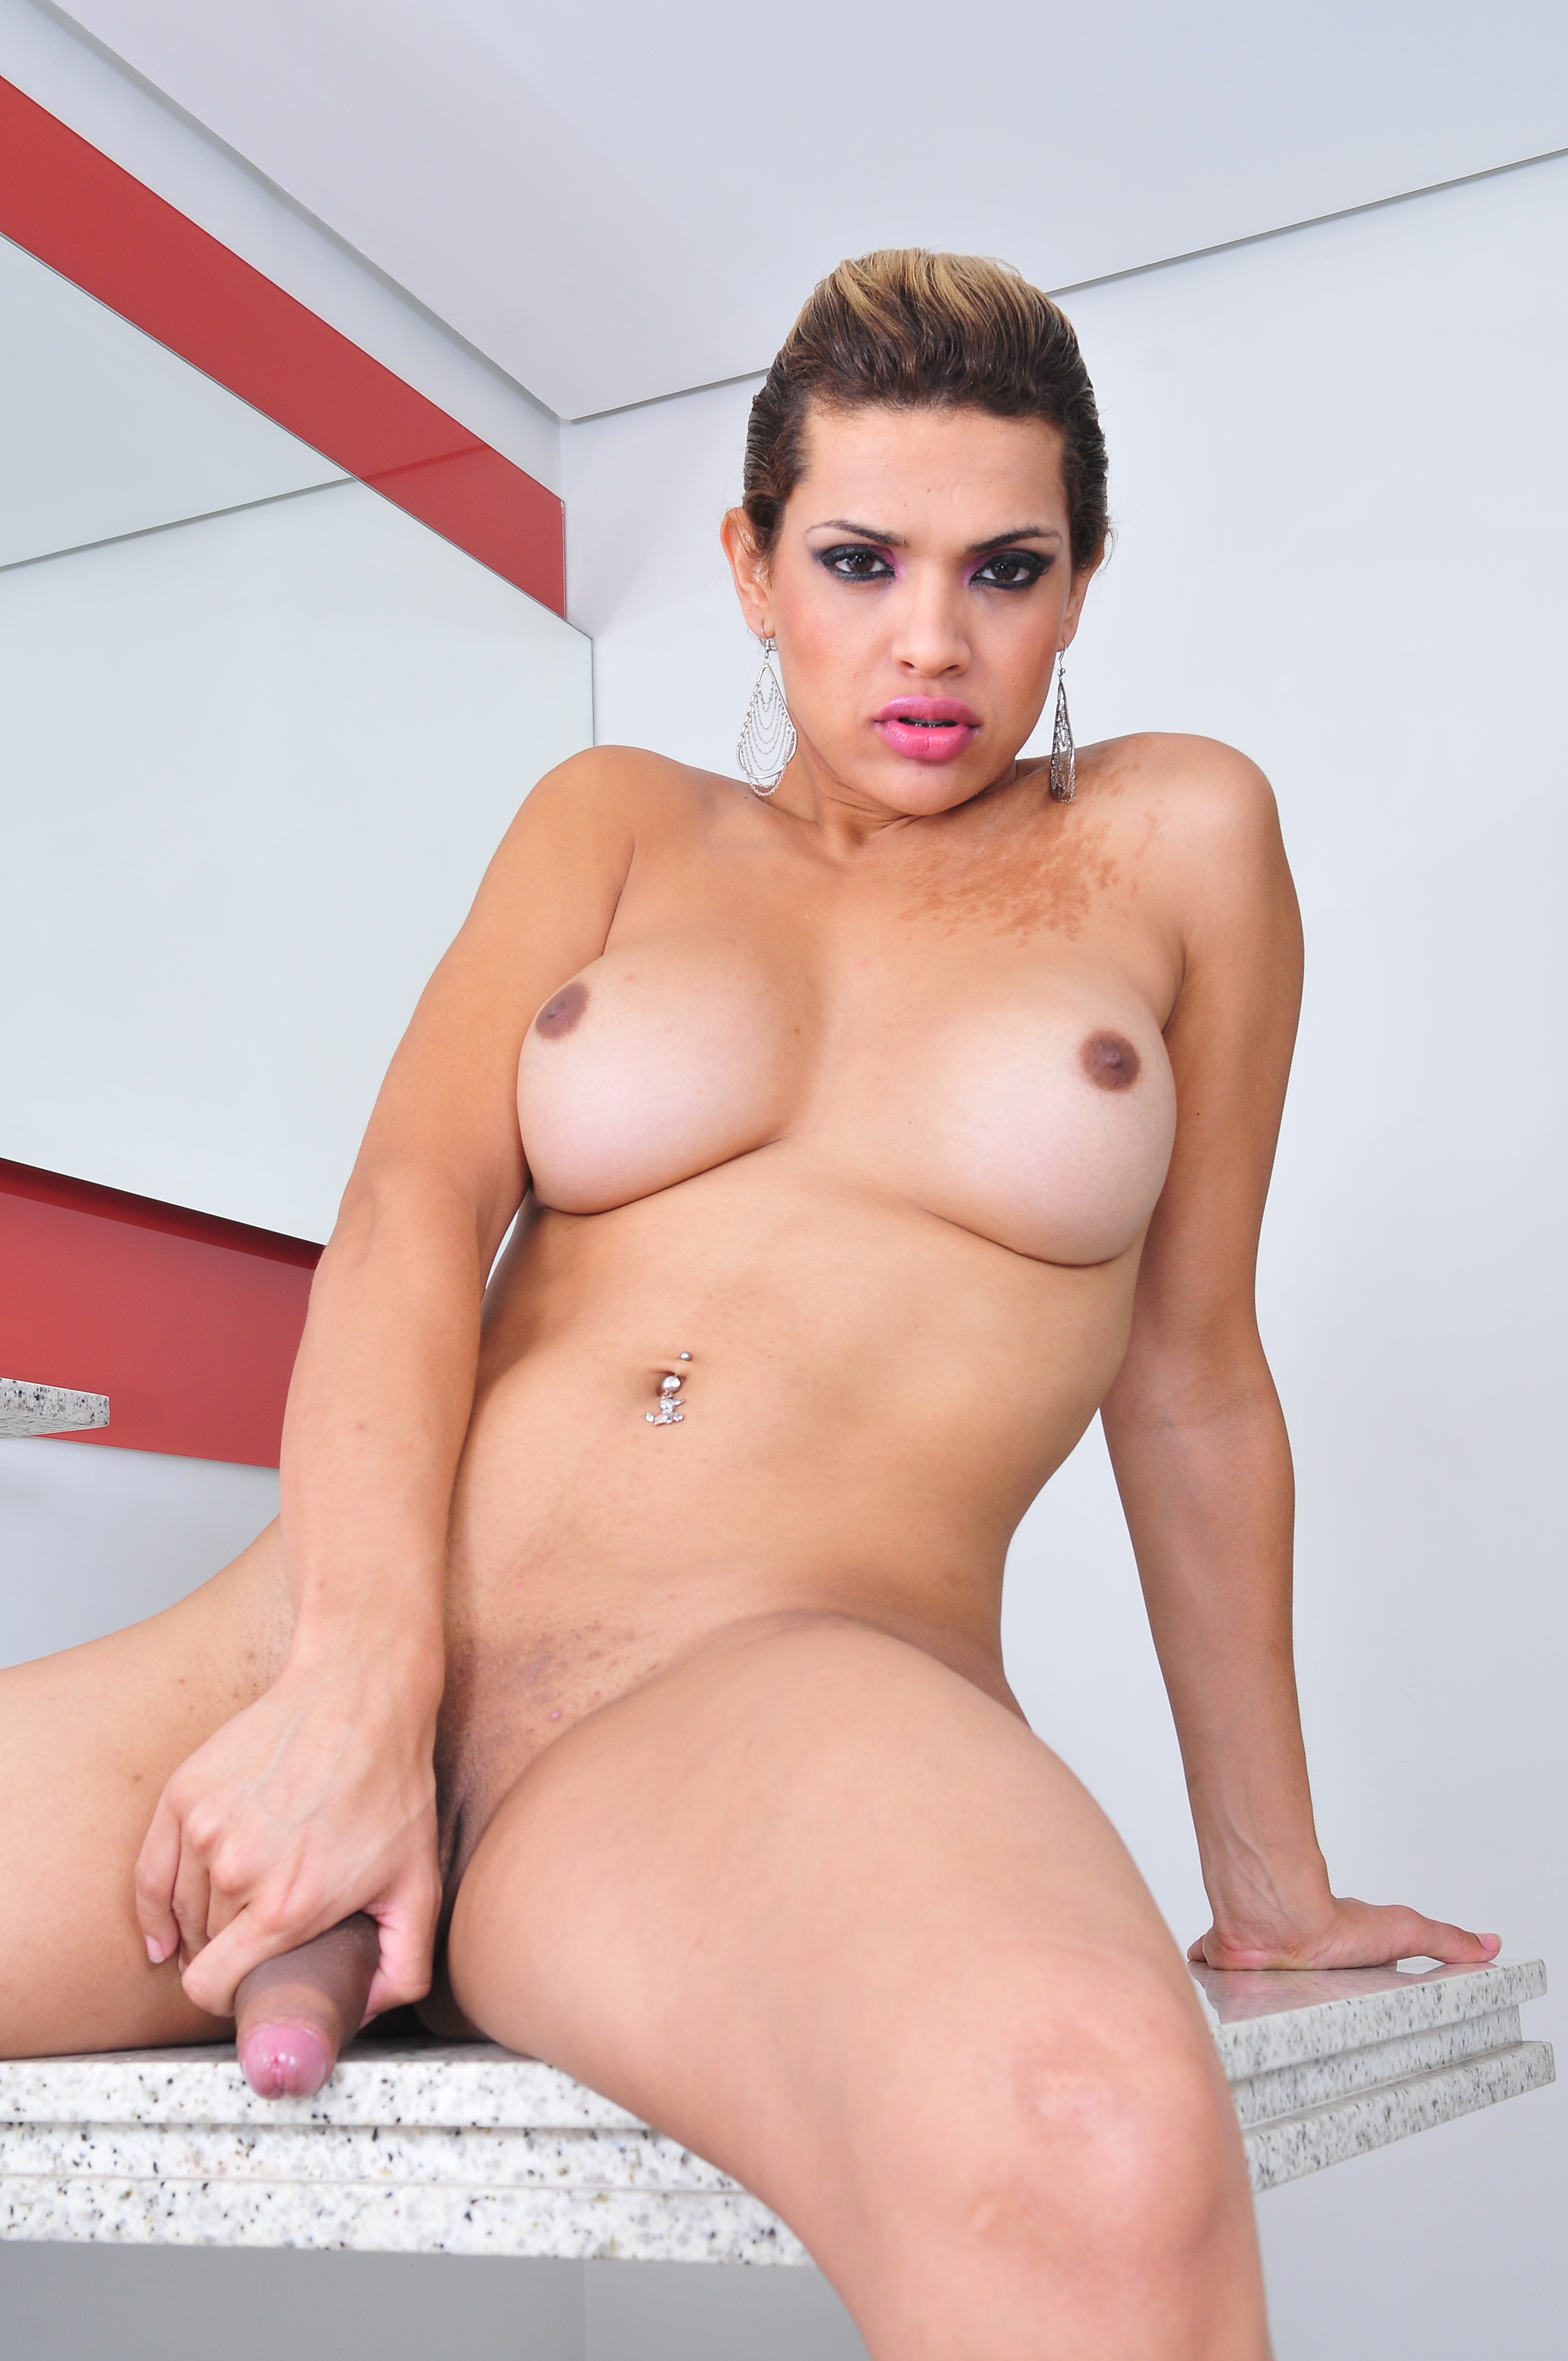 busty shemale with big ass spreading legs - photo 11 - ashemaletube